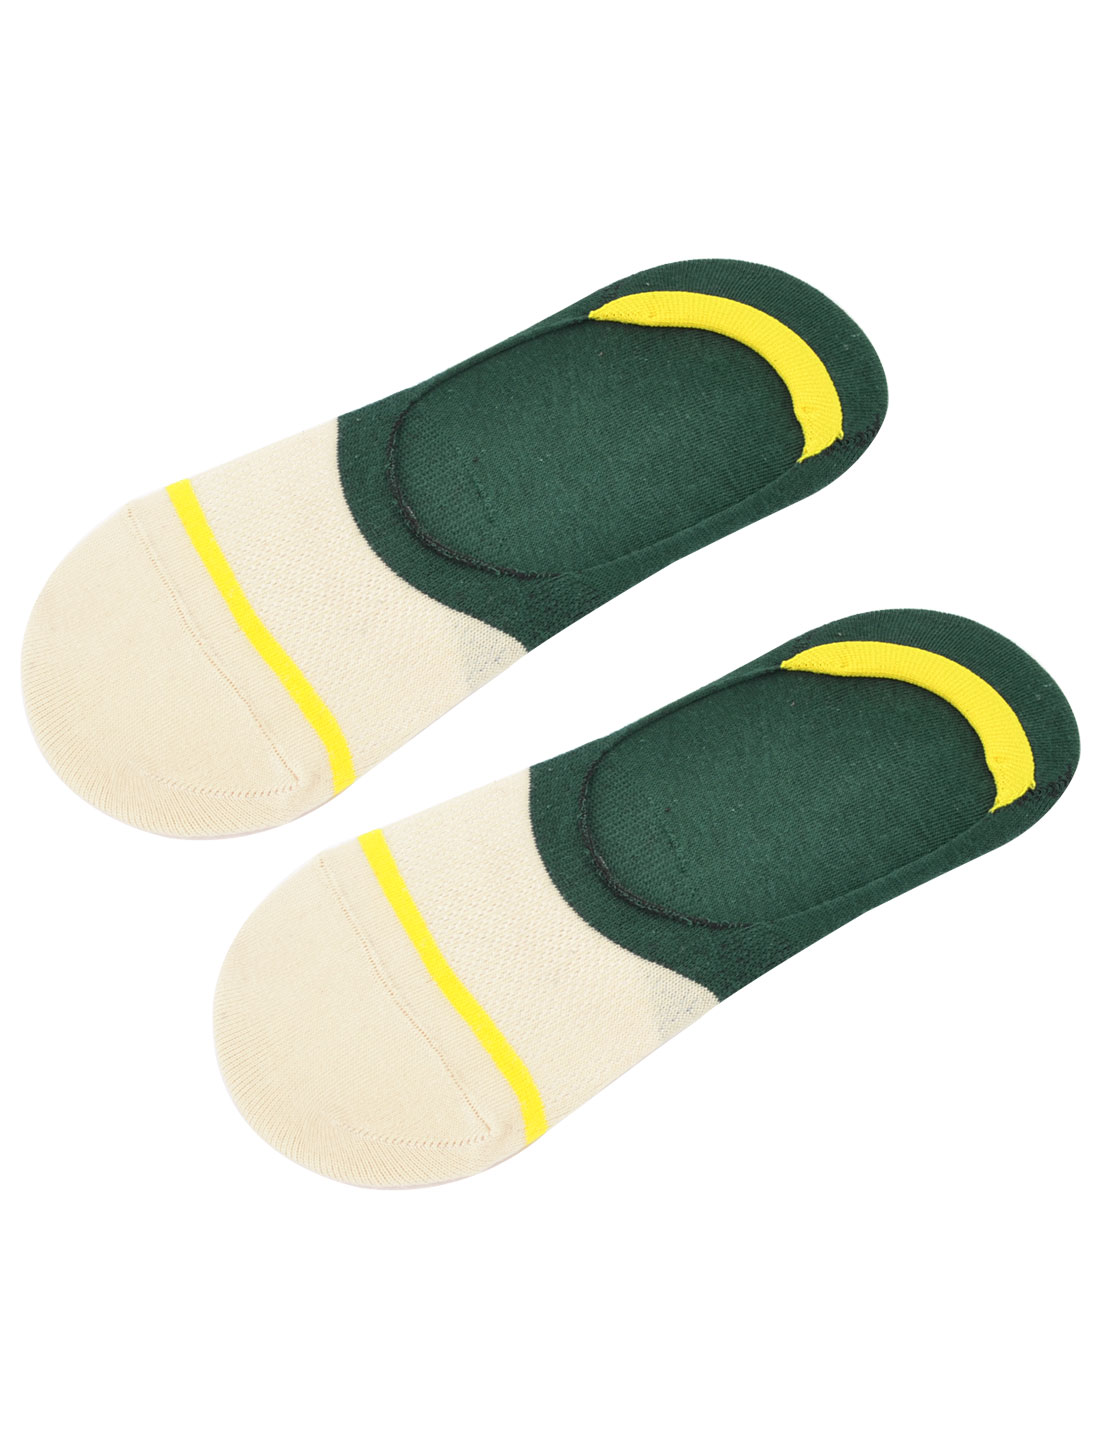 Men Summer Heel Care Loafer Boat Liner Invisible Socks Green White Yellow Pair